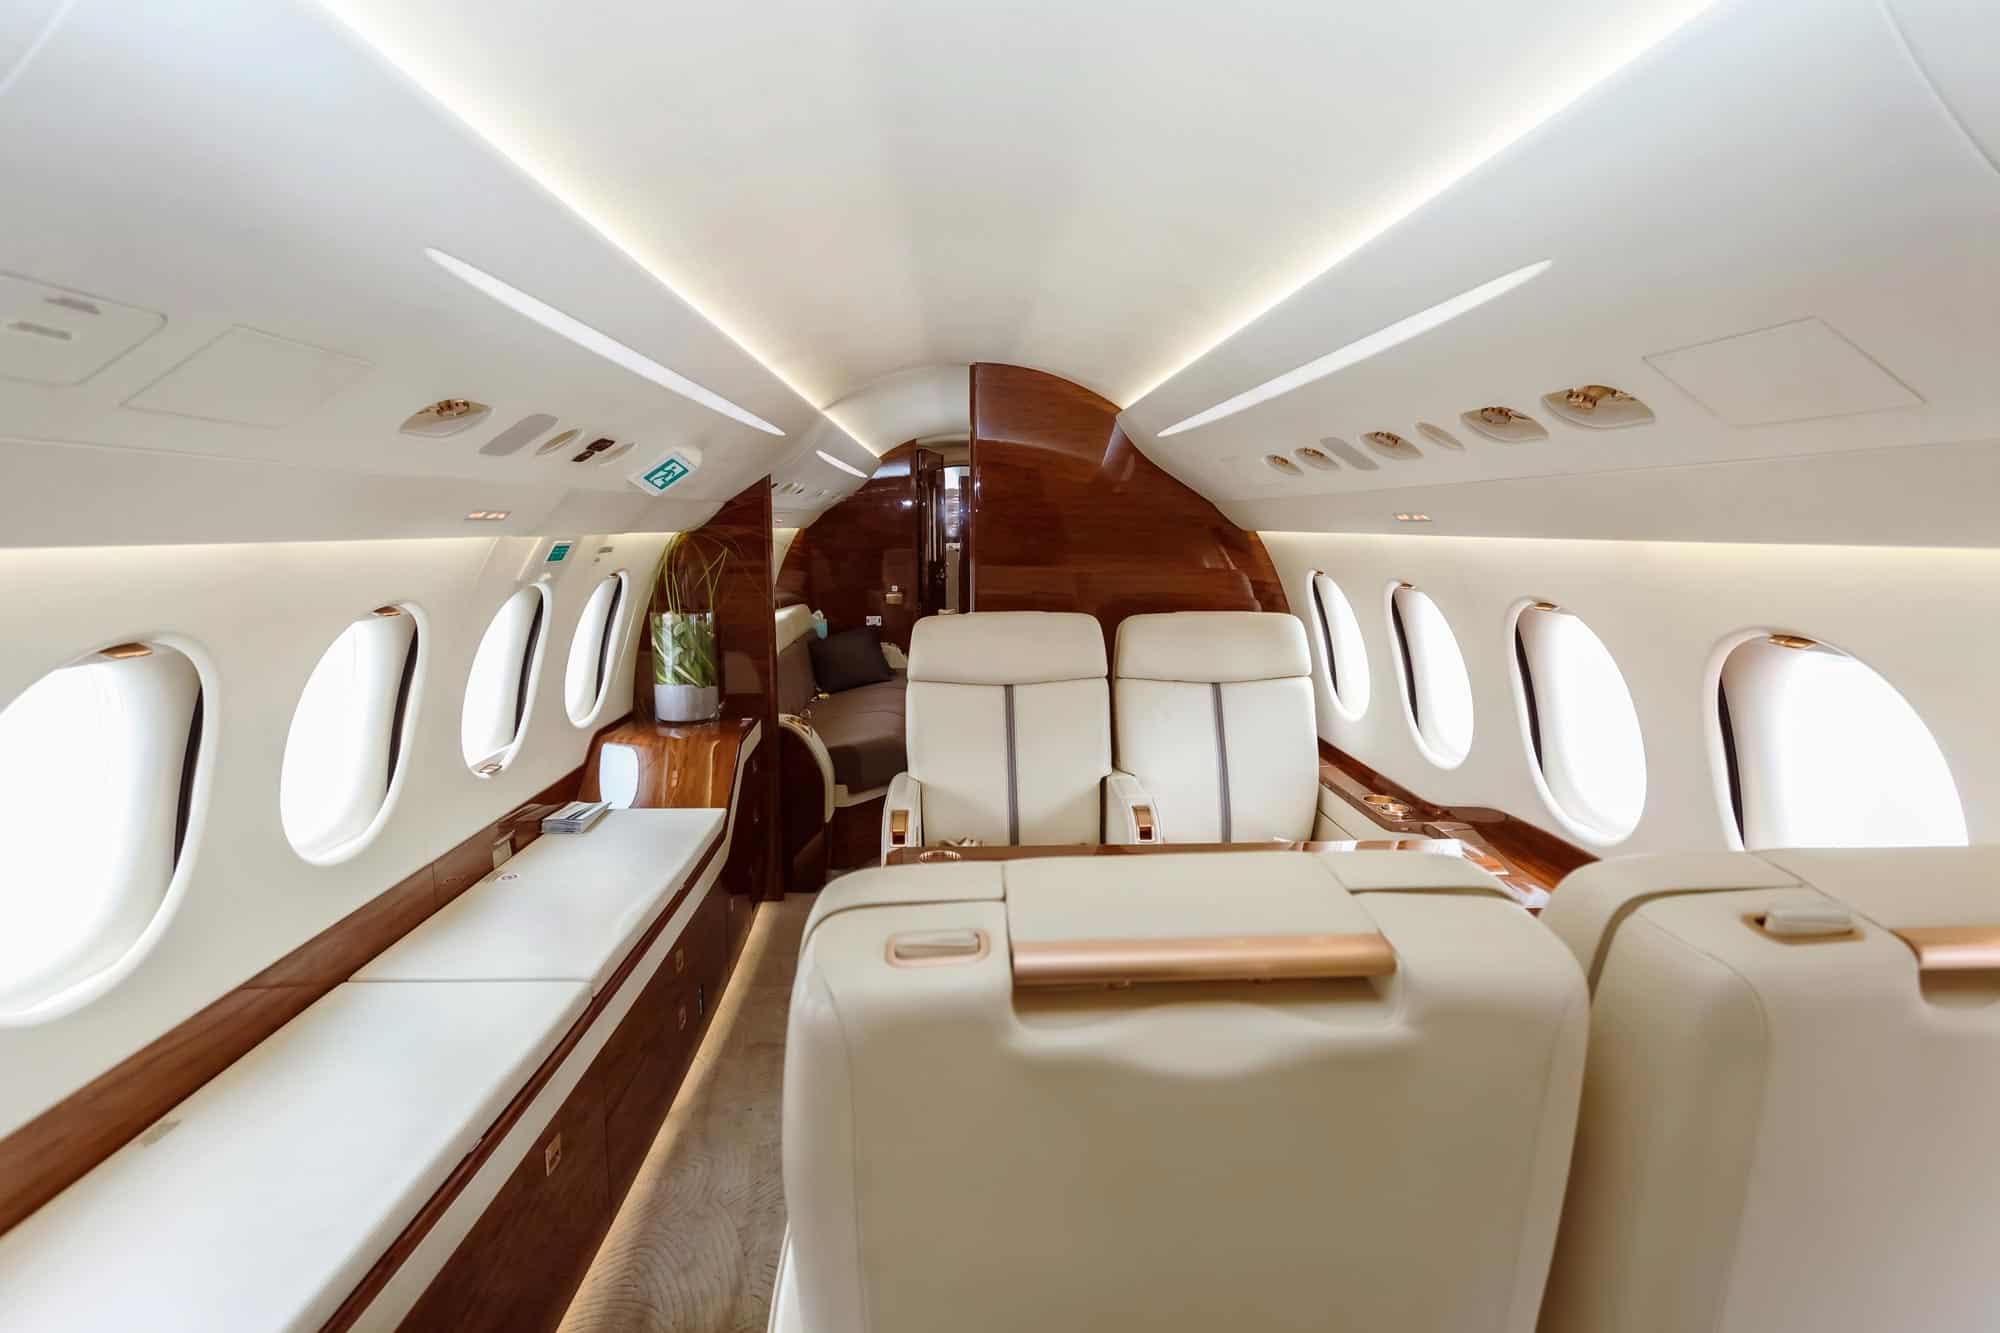 How to find private jet charter empty legs with mlkjets2 - How to find private jet charter empty legs with mlkjets